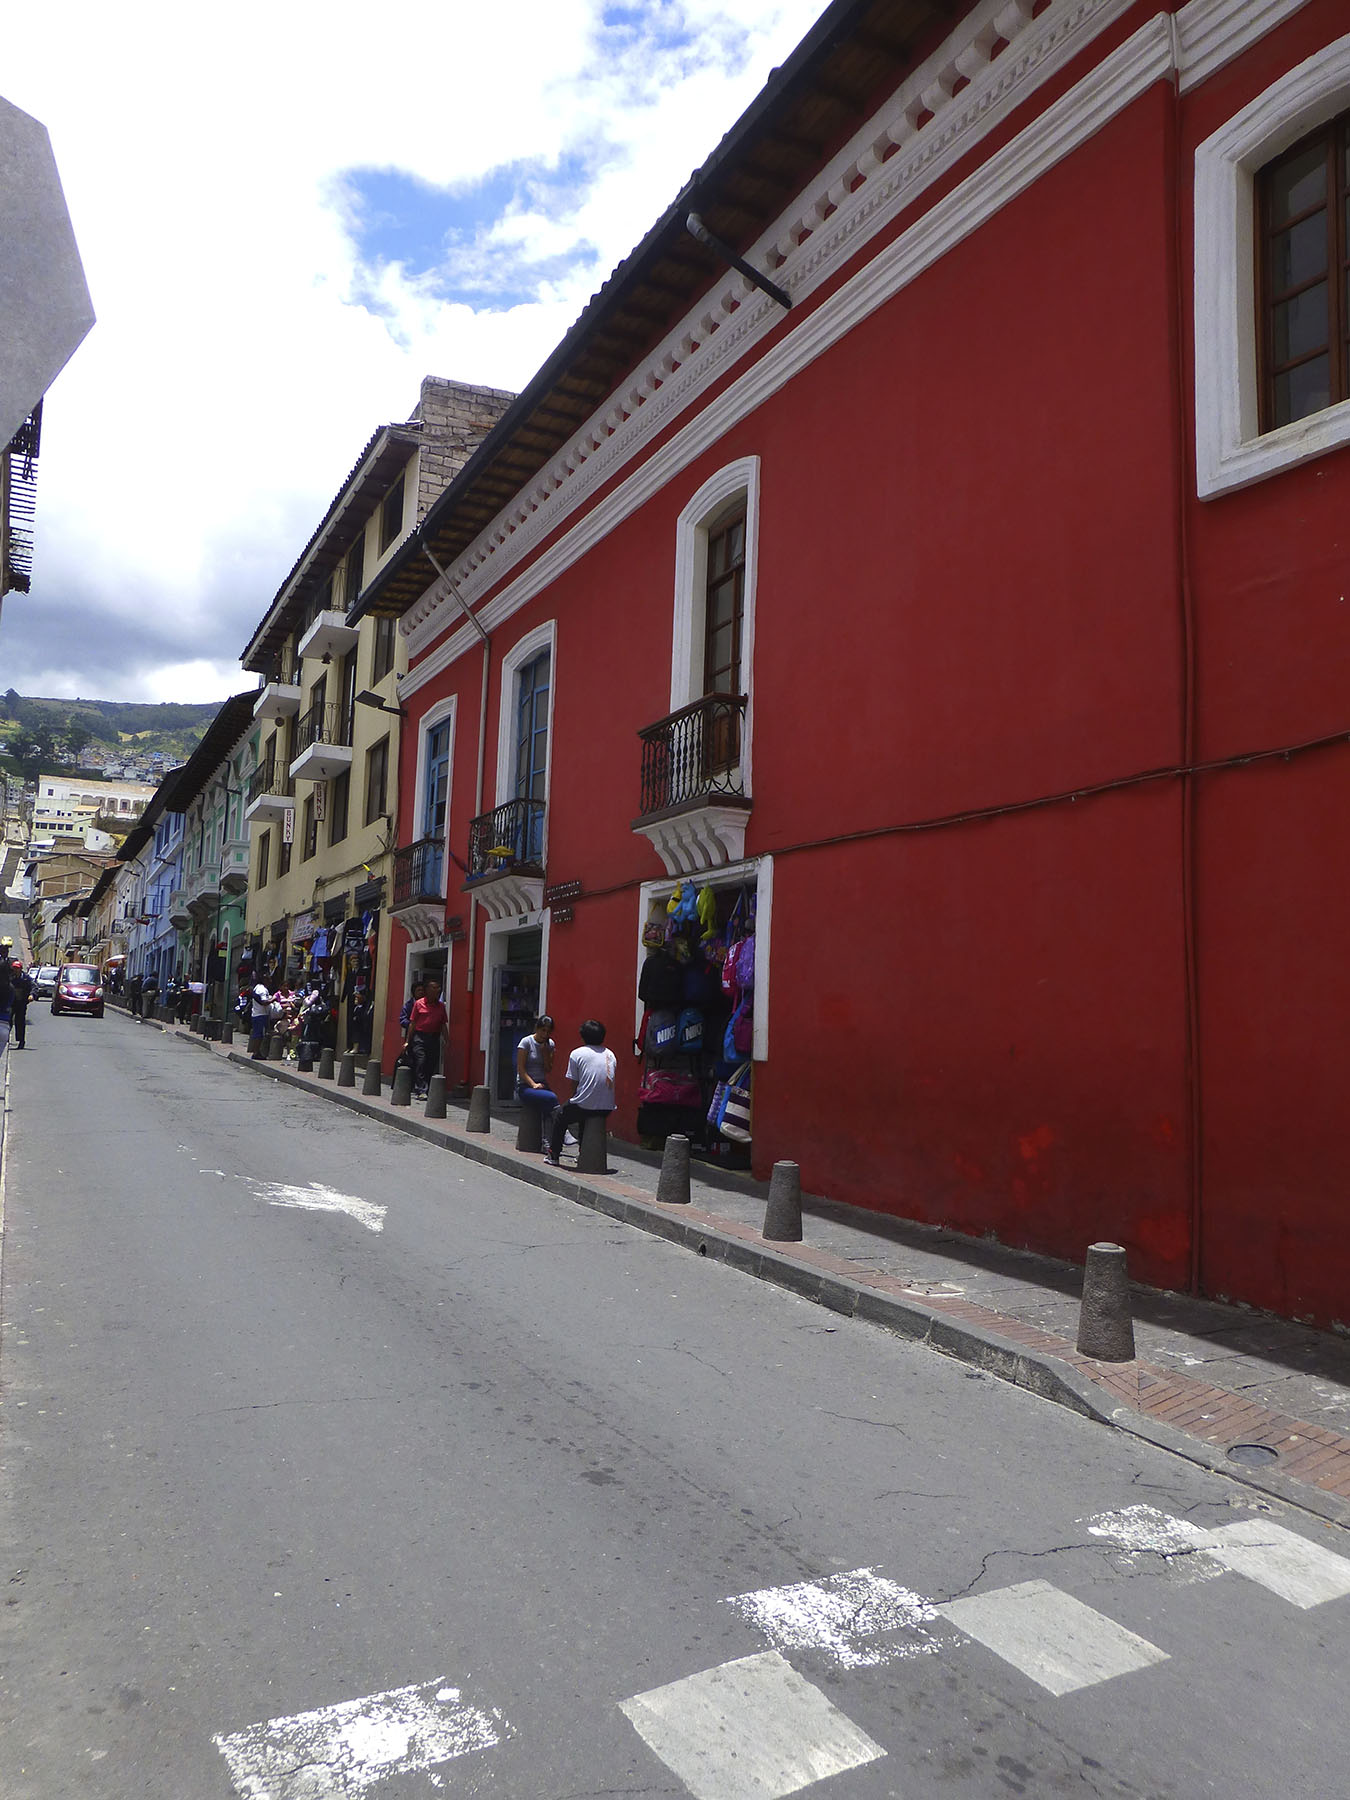 The Colors of Quito